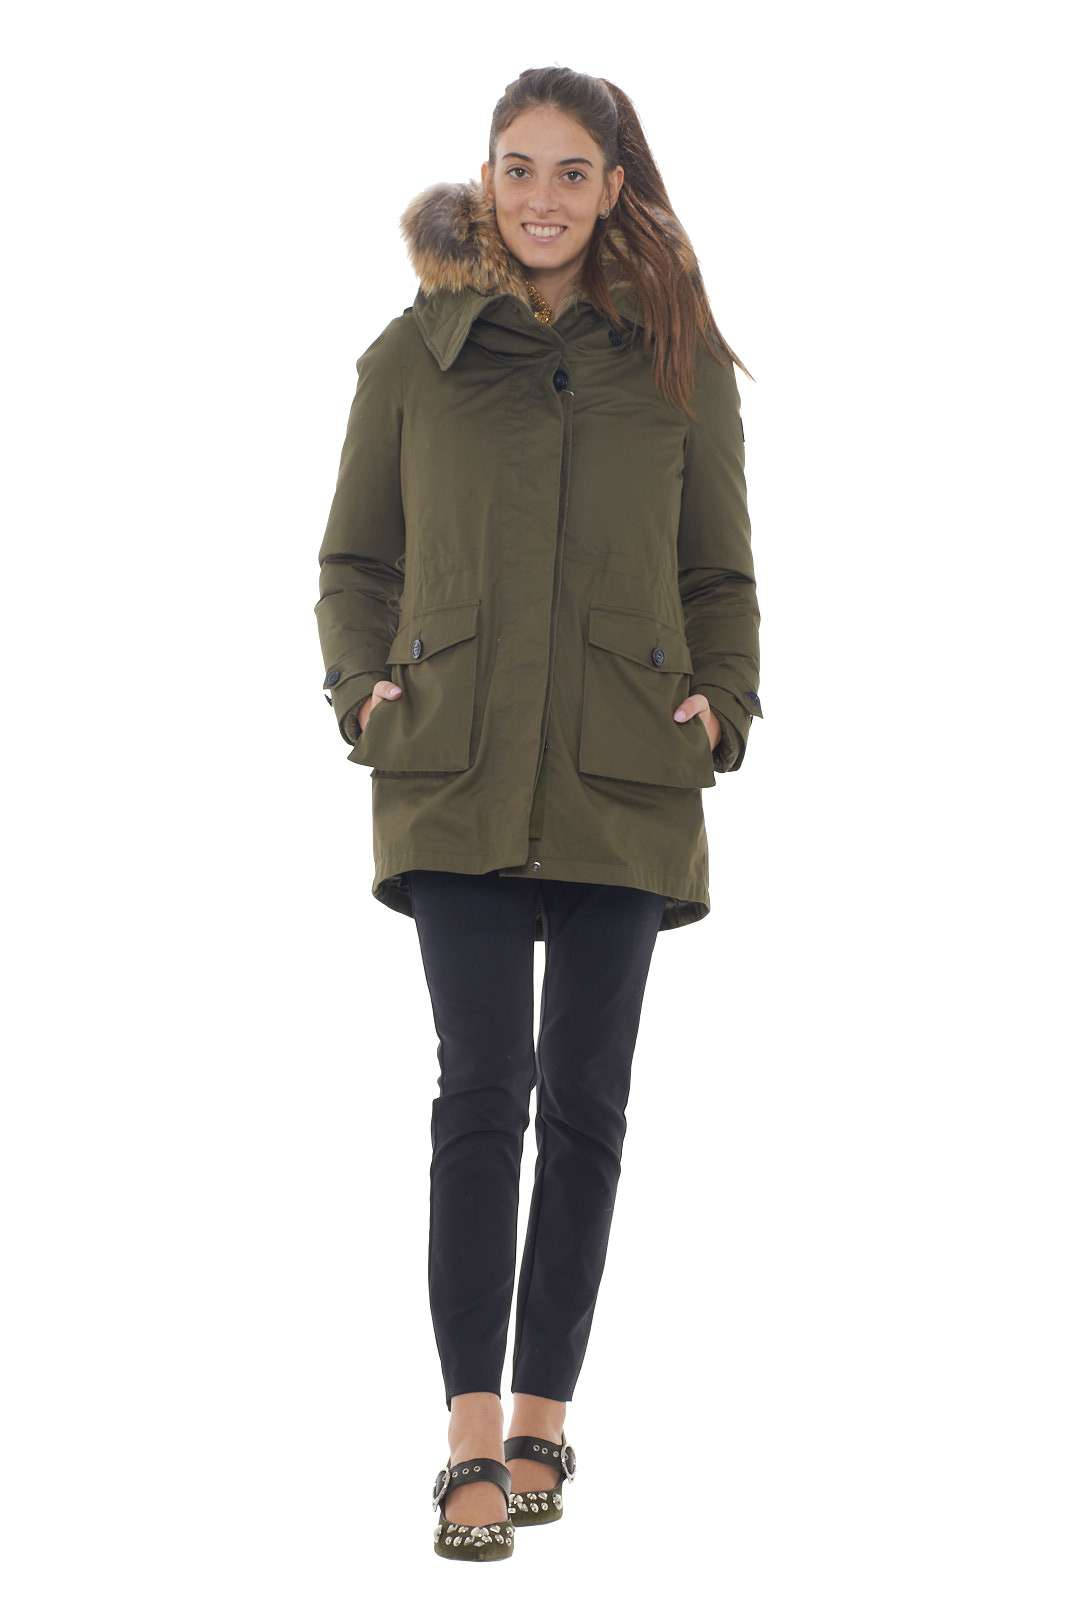 https://www.parmax.com/media/catalog/product/a/i/AI-outlet_parmax-parka-donna-Woolrich-WWCPS2760-D.jpg